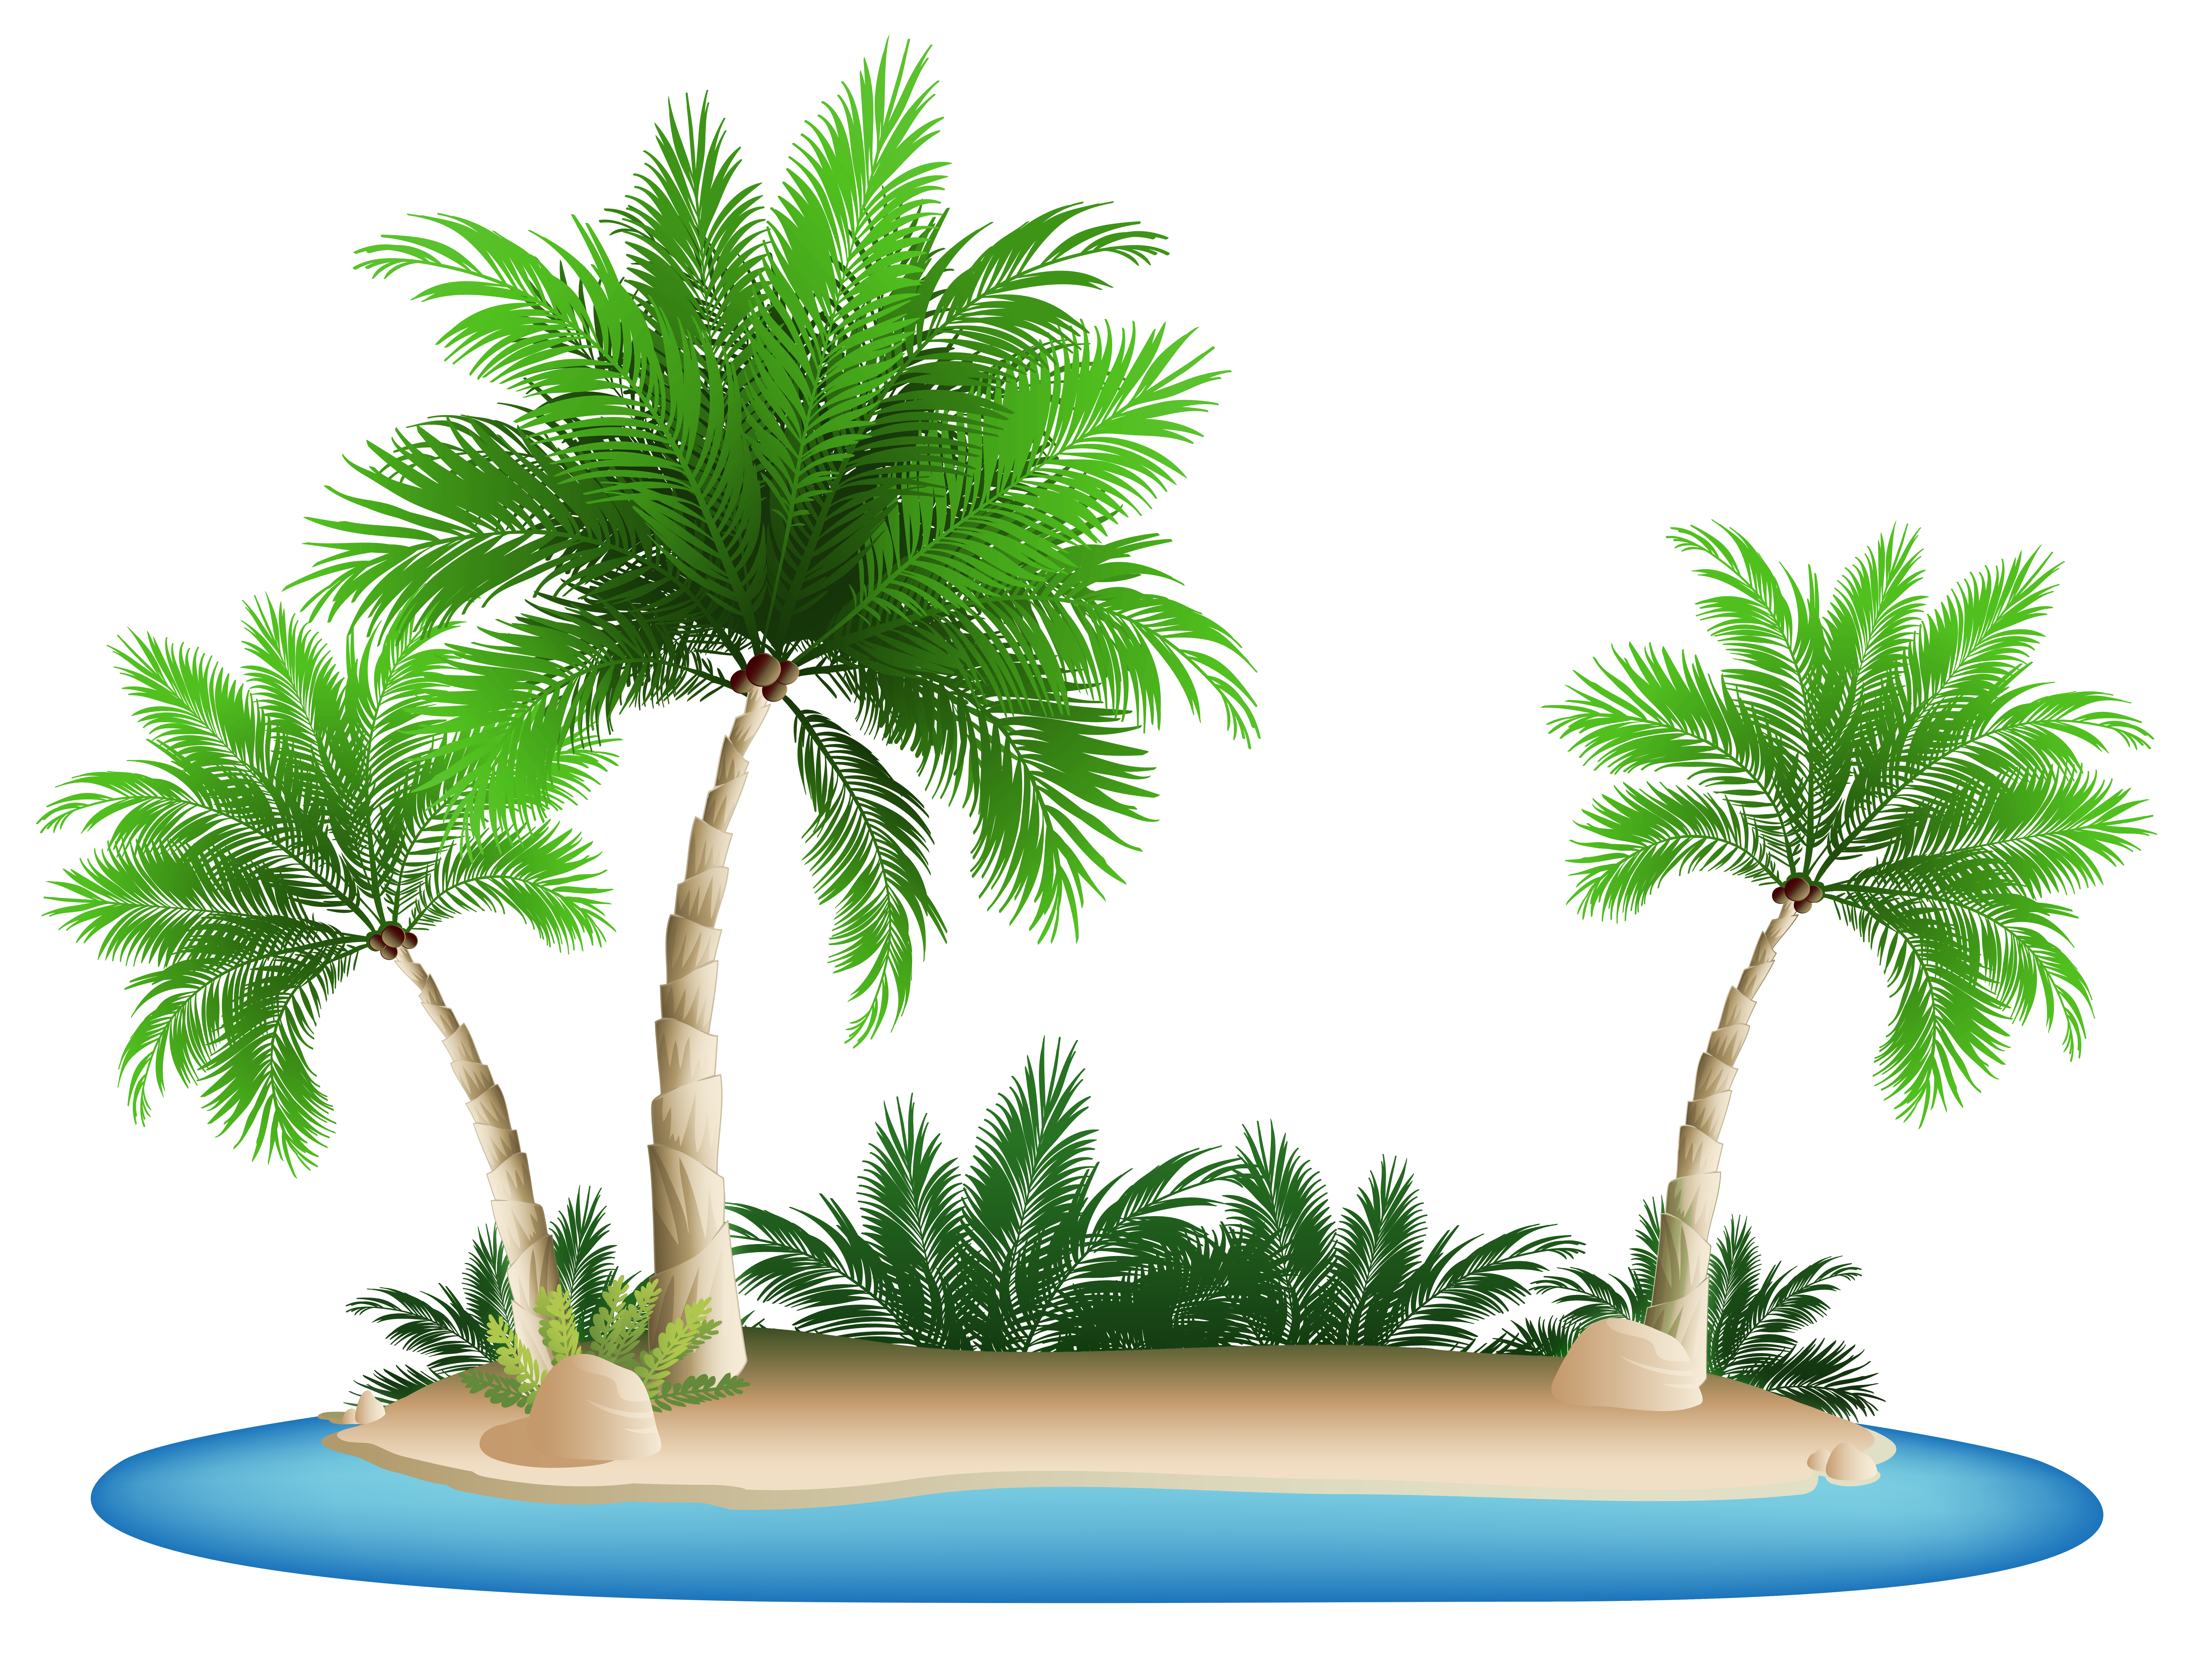 Island png. Palm trees clipart picture